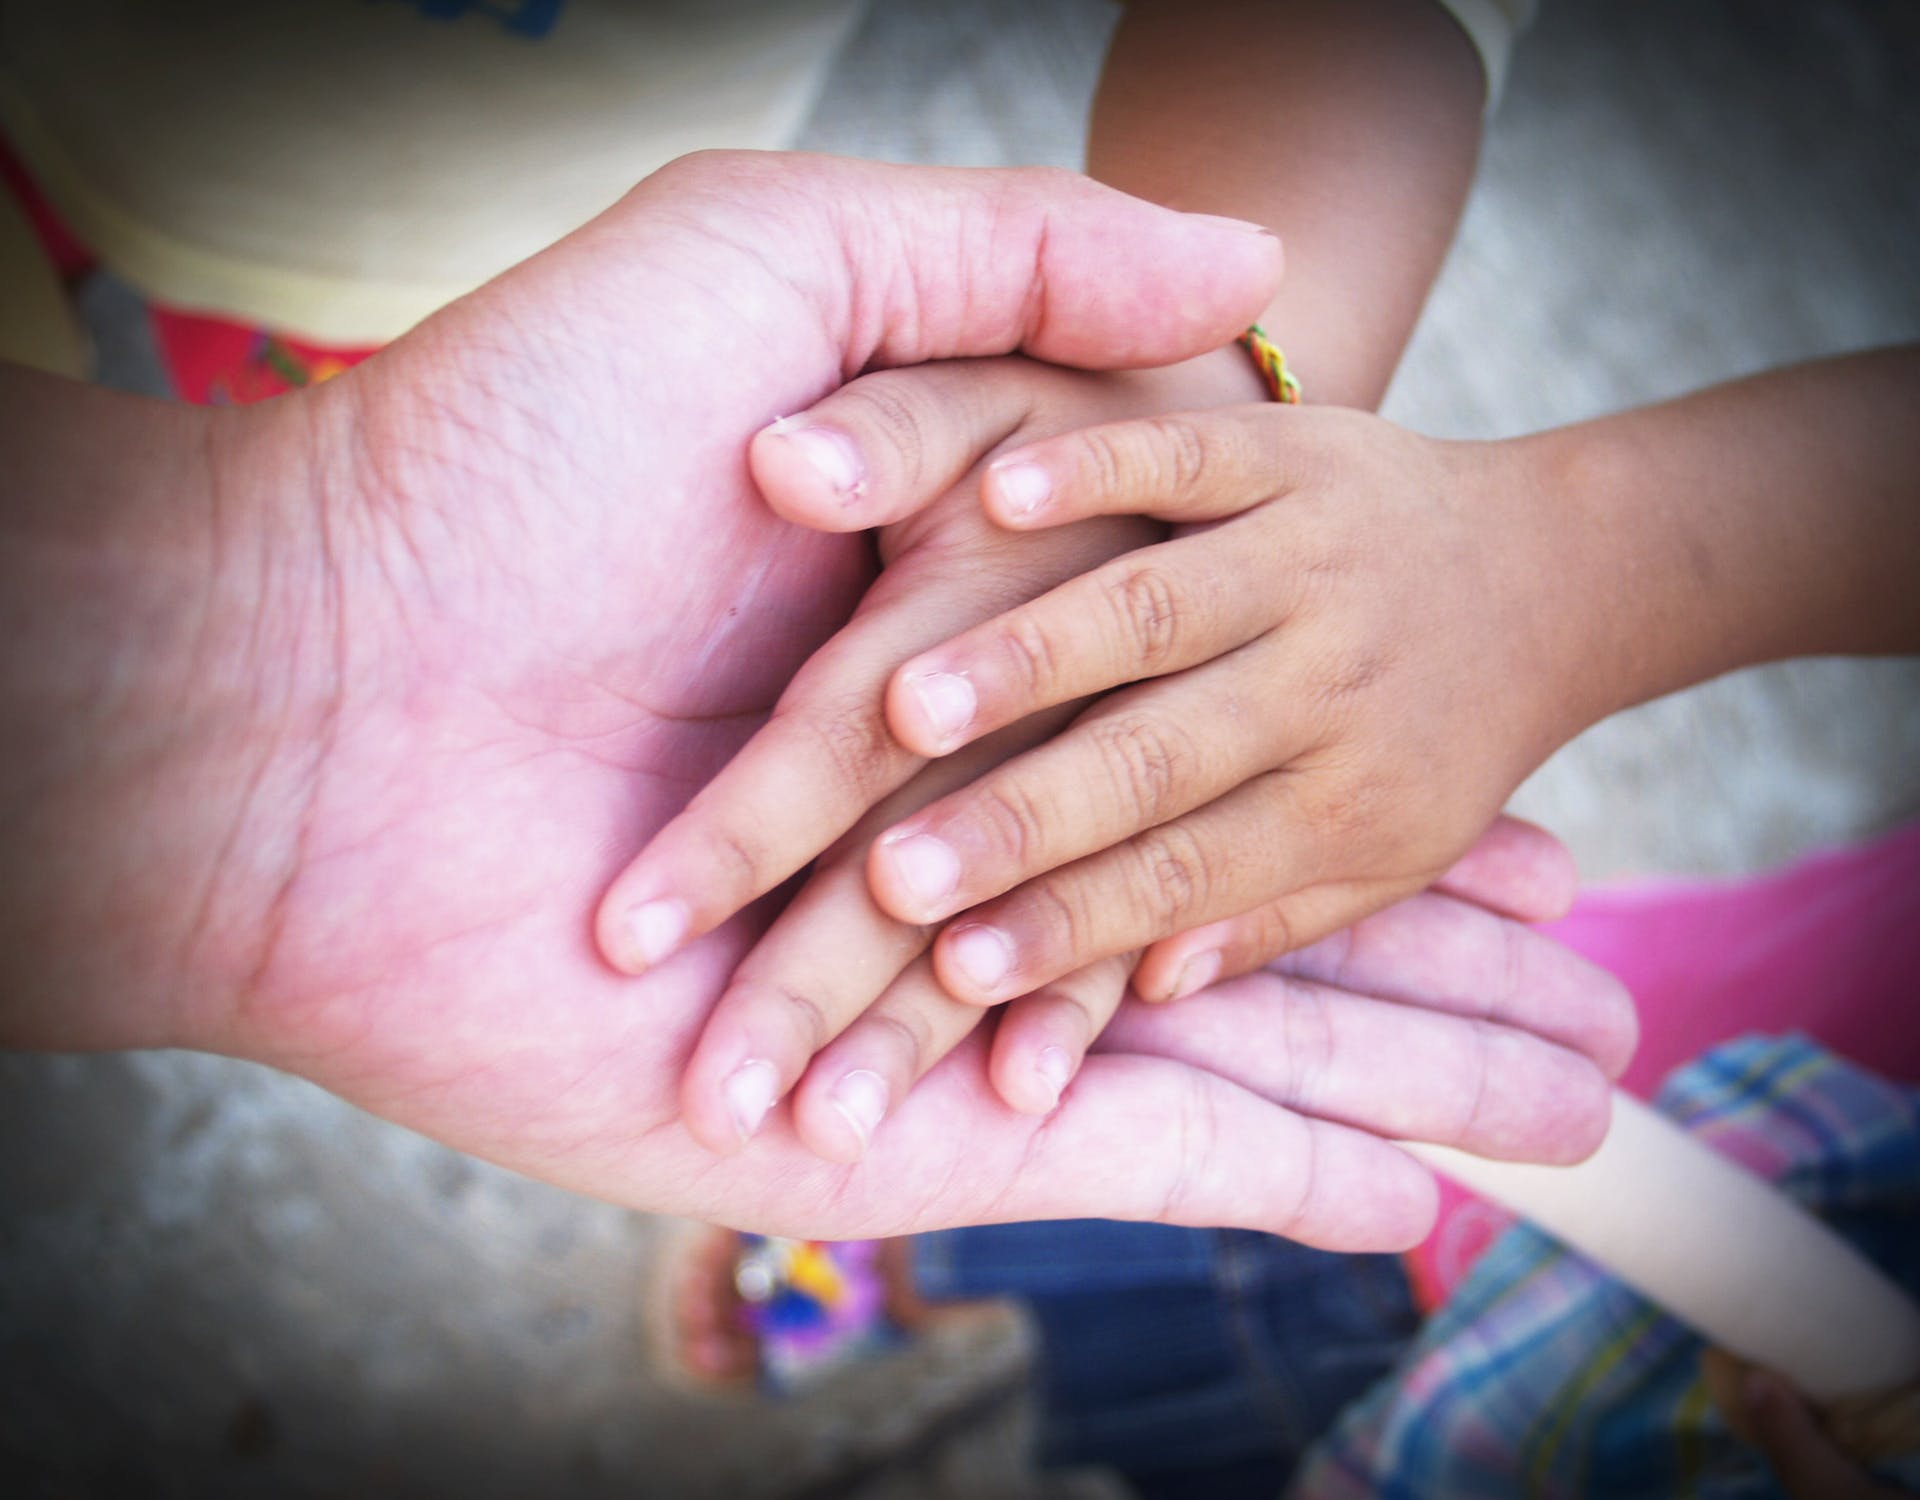 Nearly 600 foster families are needed across the South West this year.